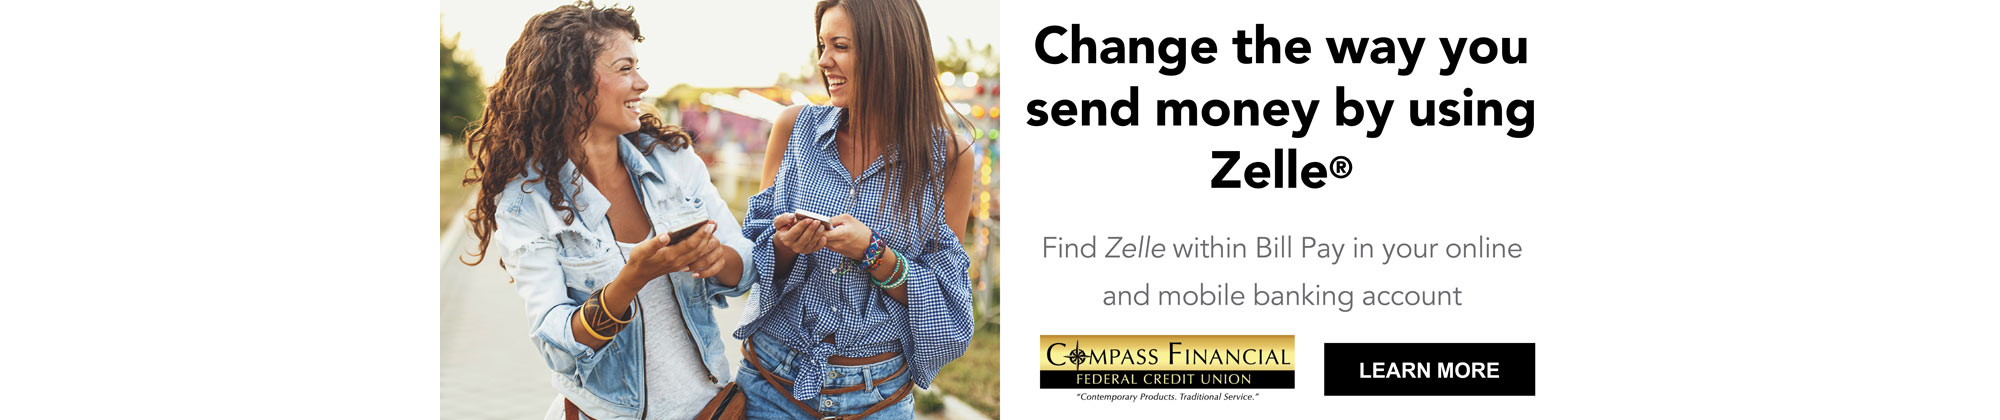 Zelle makes sending money to friends, family, and others you know fast, safe, and easy.